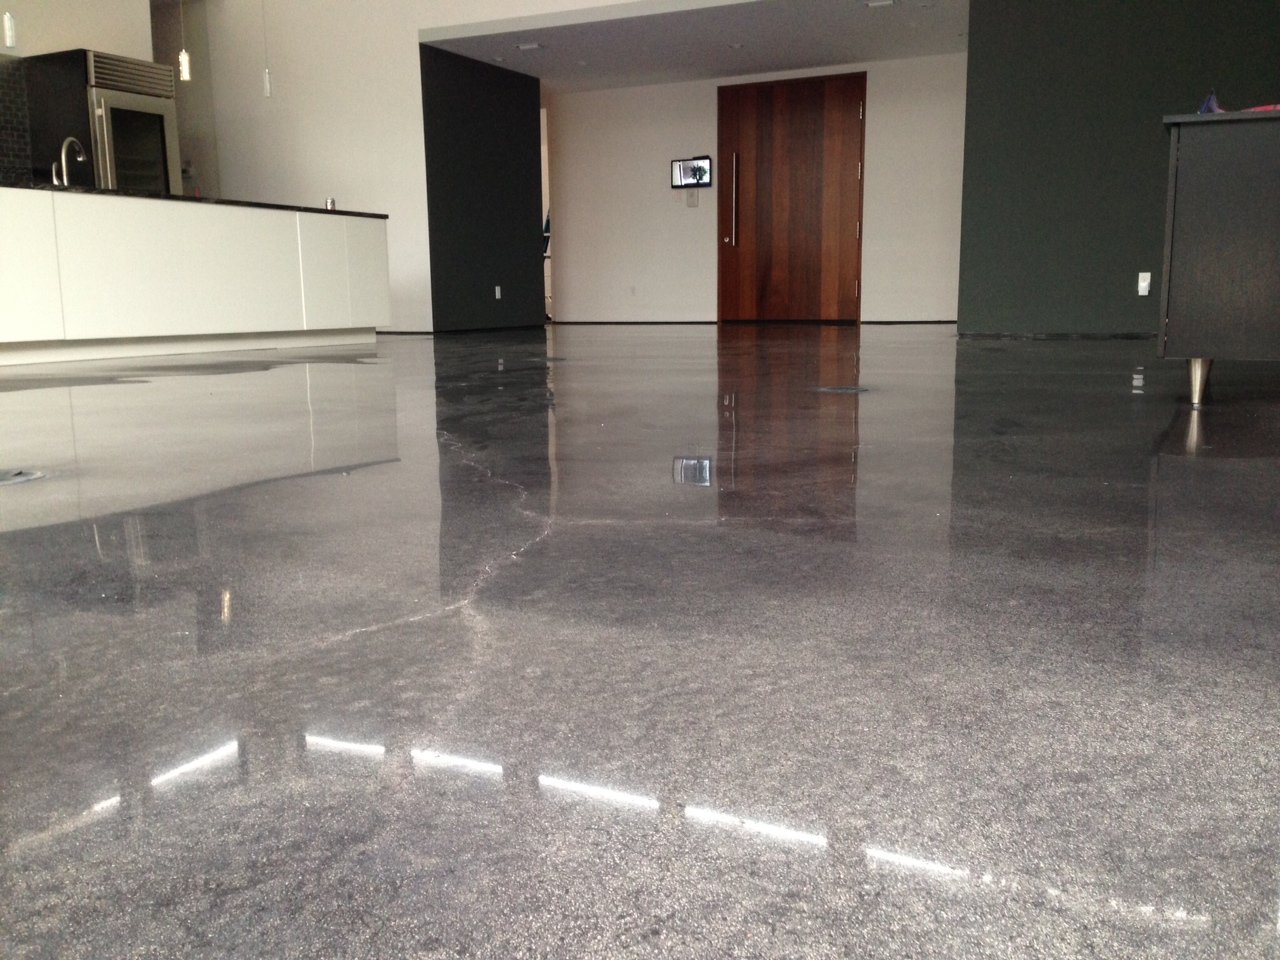 Polished Concrete Floors in Commercial Buildings